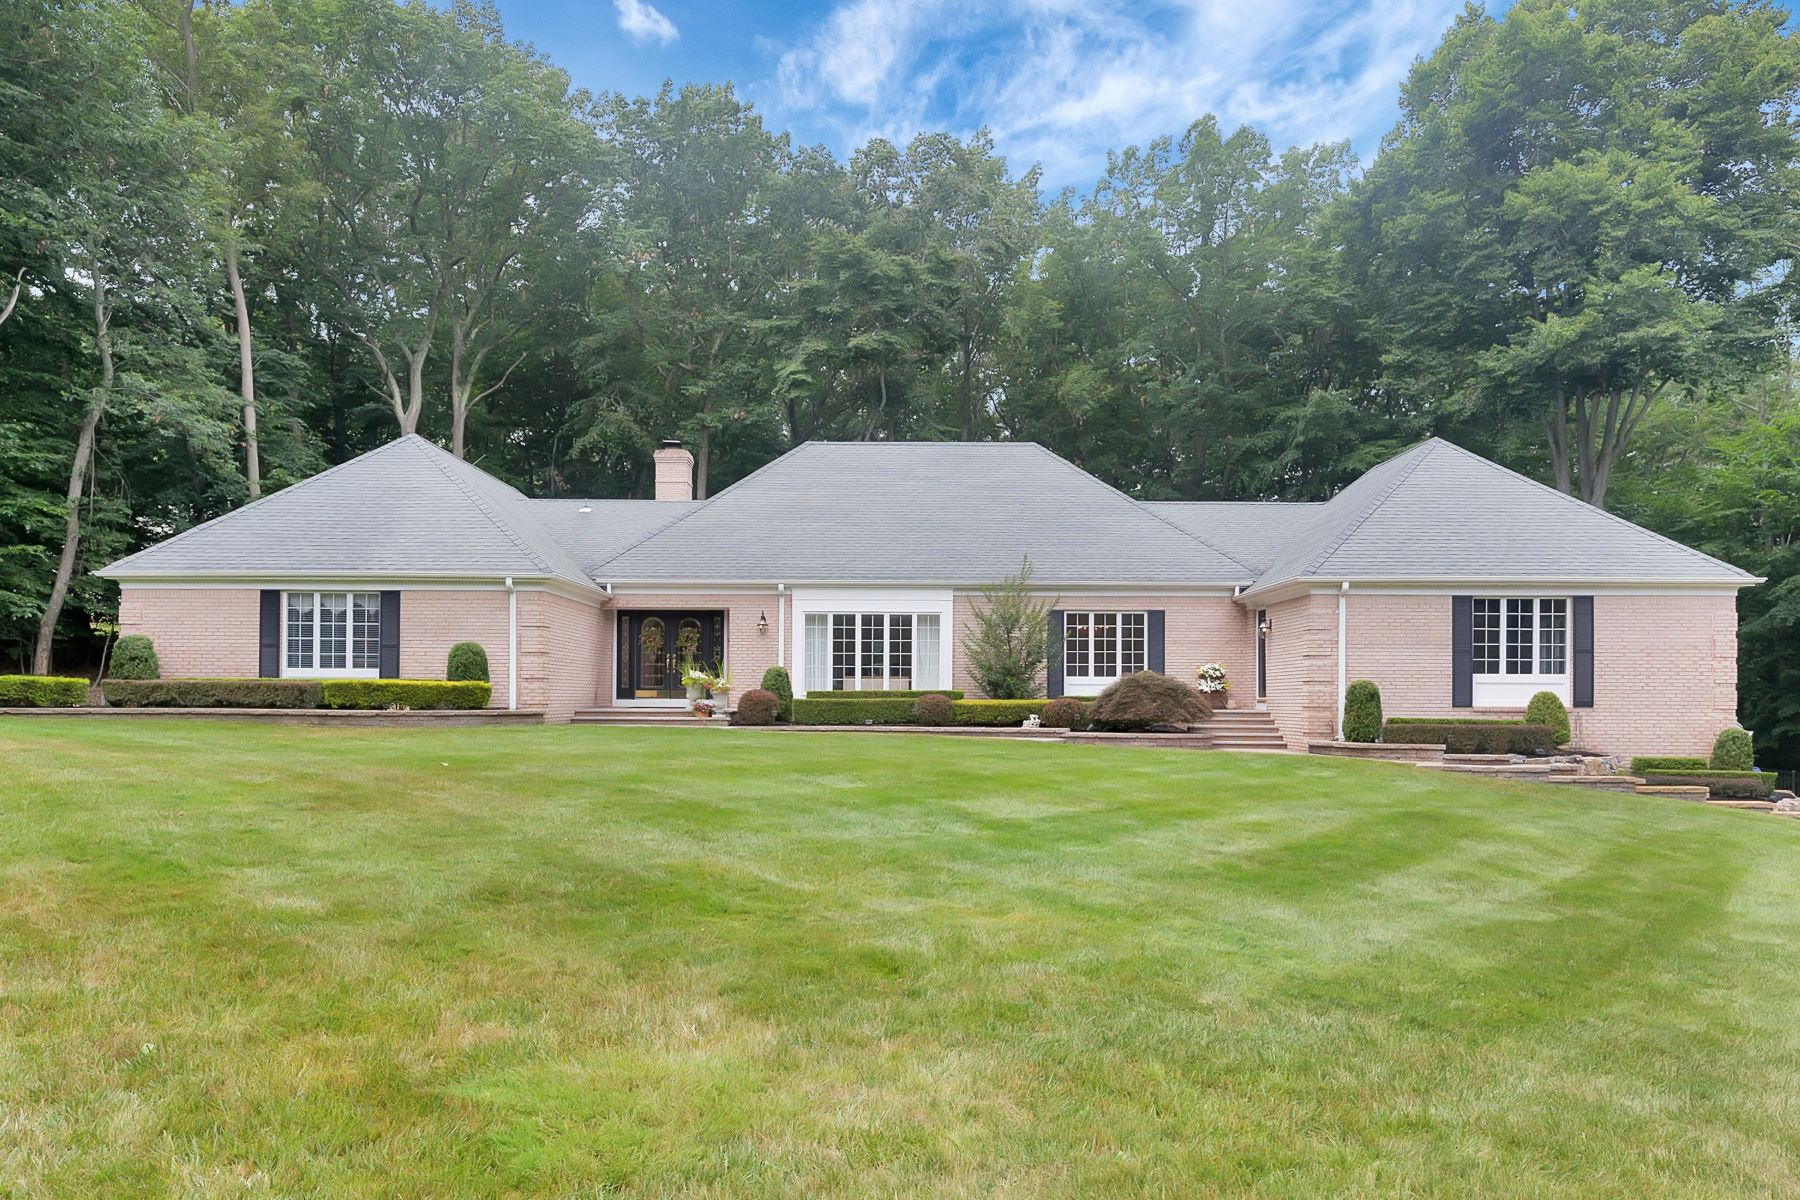 Maison unifamiliale pour l Vente à Gorgeous Stately Ranch 16 Deep Wood Lane Colts Neck, New Jersey, 07722 États-Unis